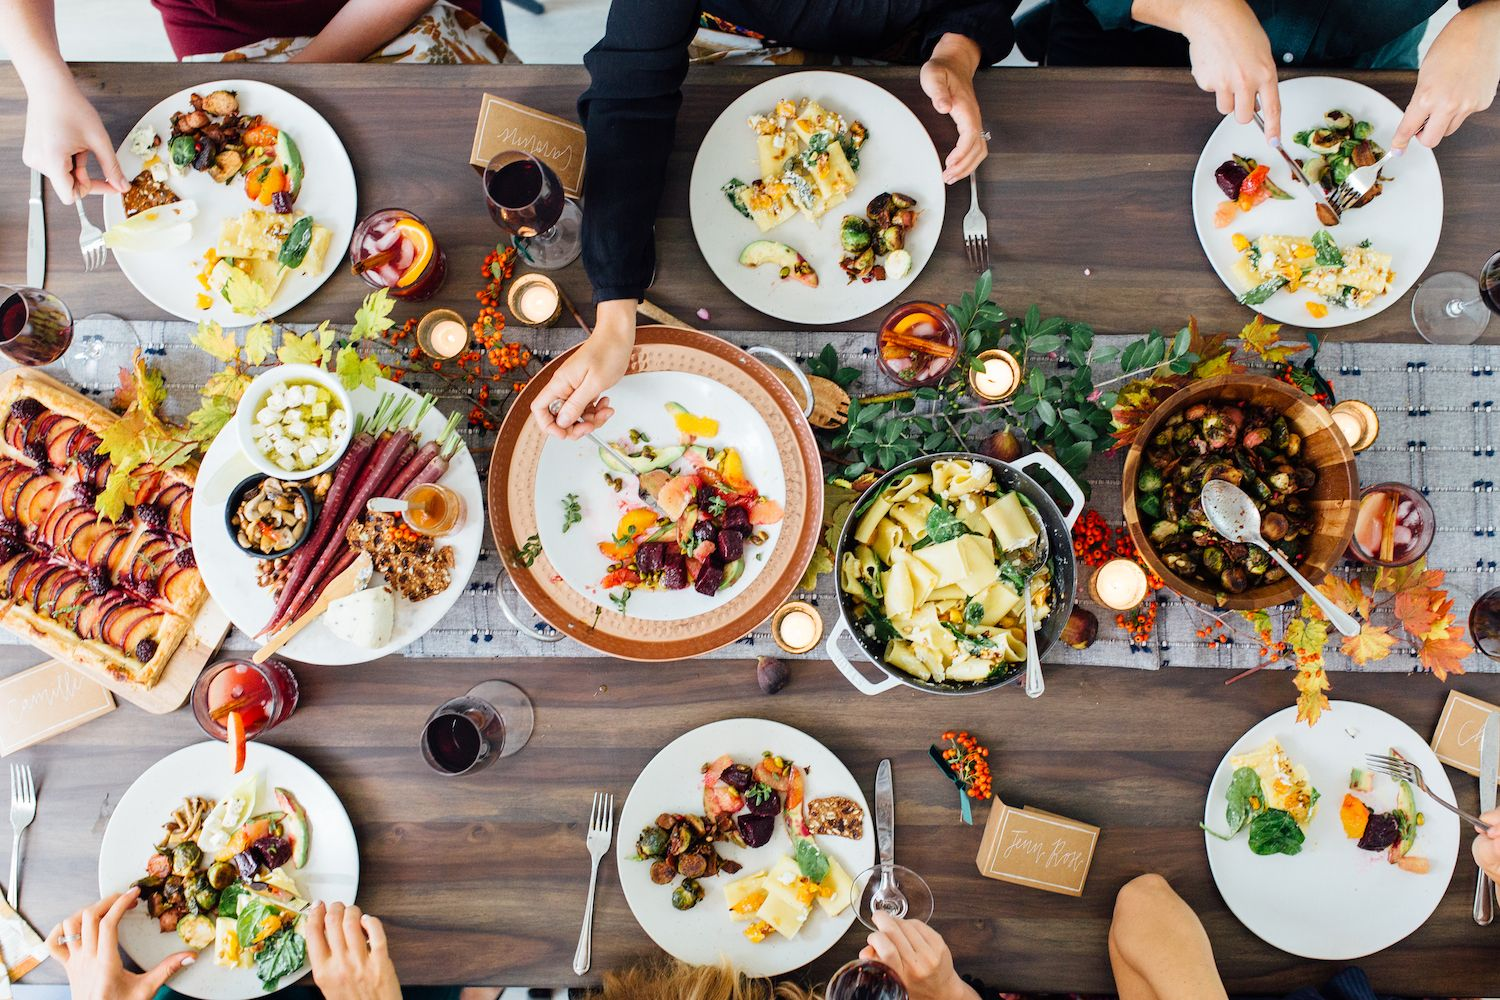 Our Cozy Friendsgiving Feast with Target Friendsgiving